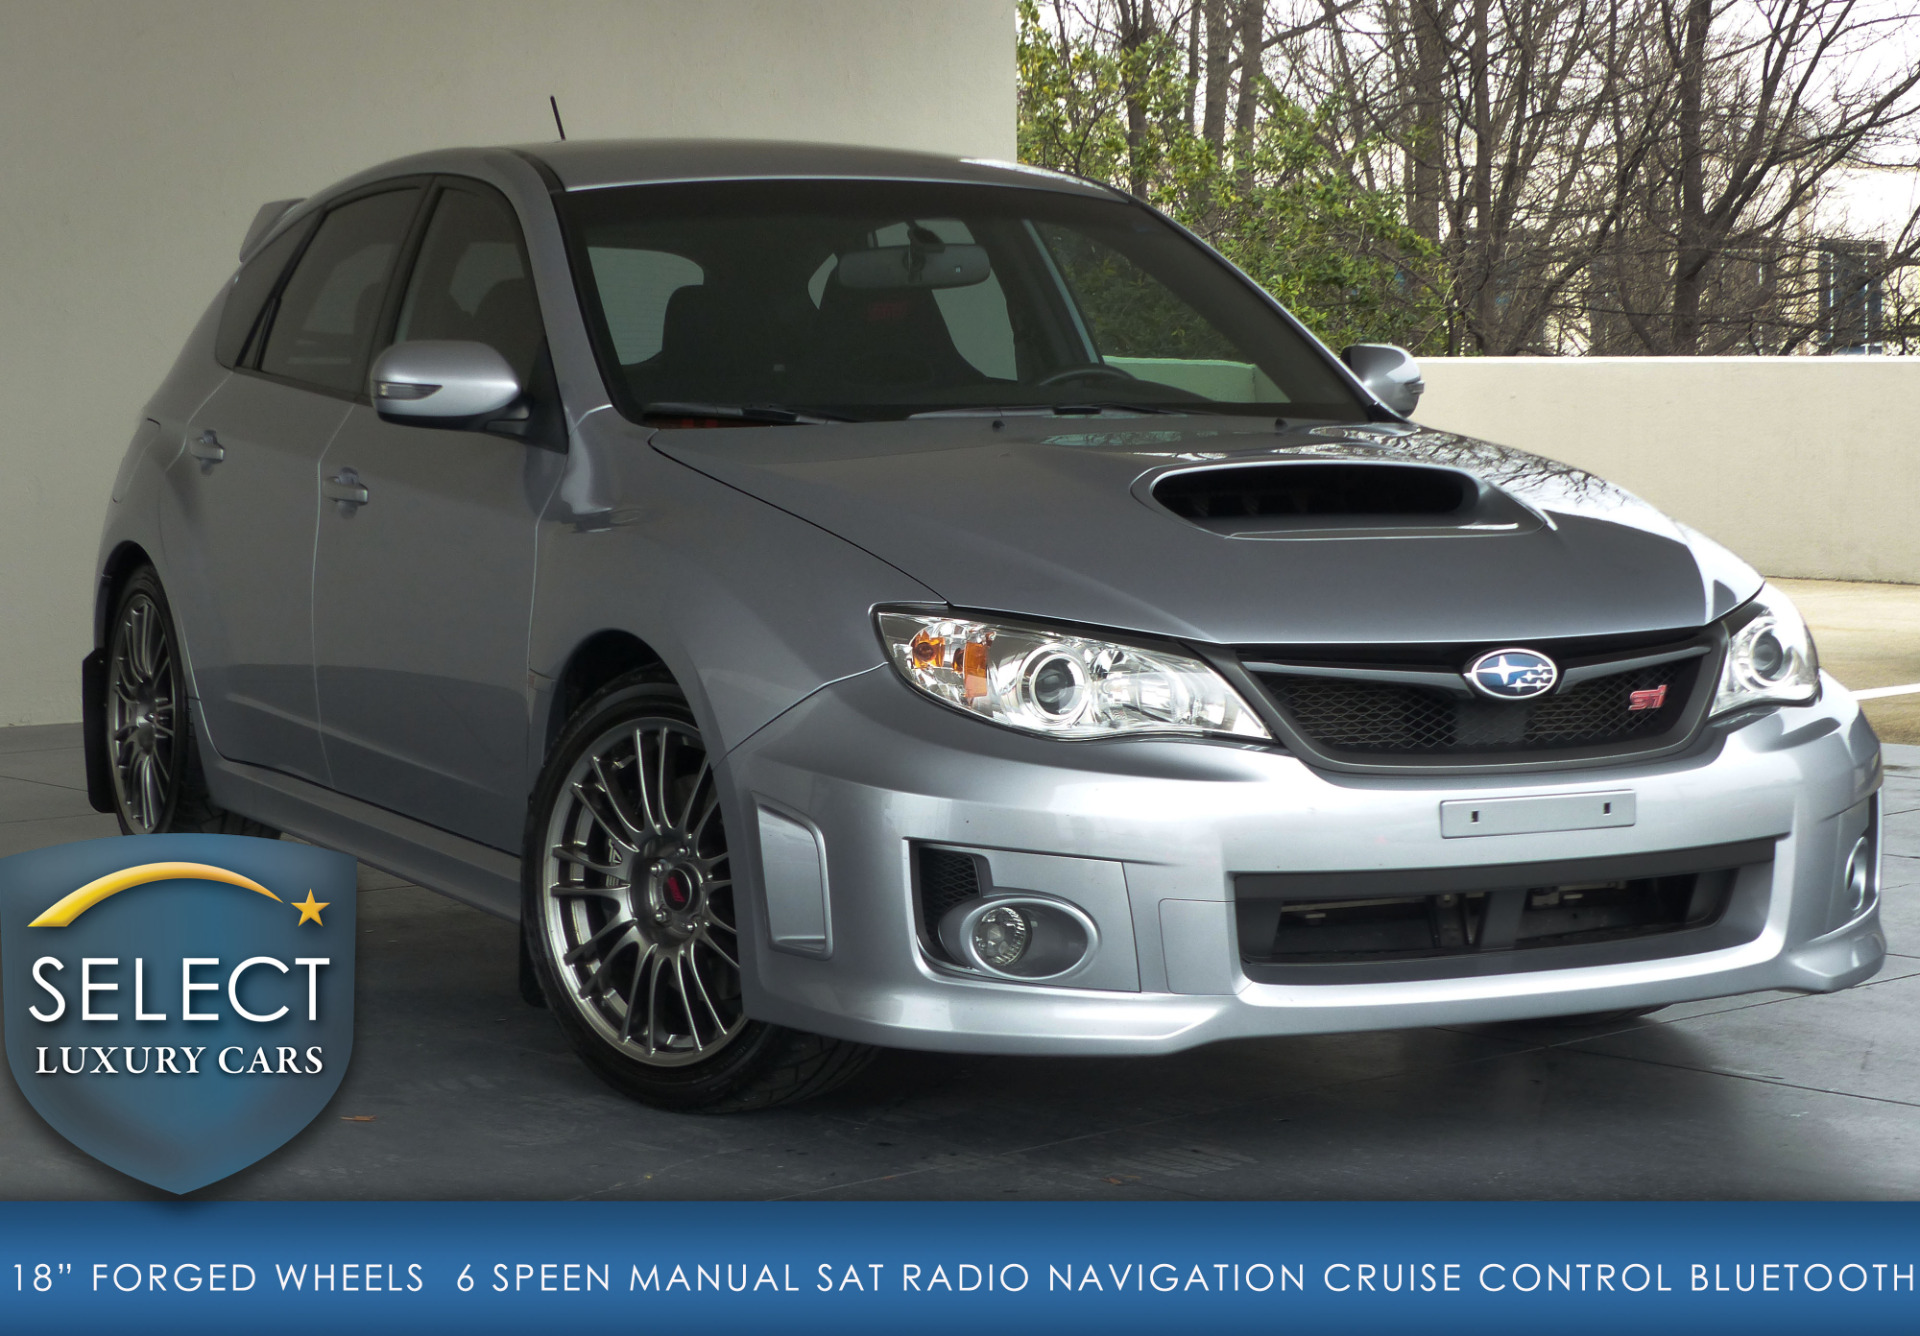 used 2014 subaru impreza wrx sti marietta ga. Black Bedroom Furniture Sets. Home Design Ideas